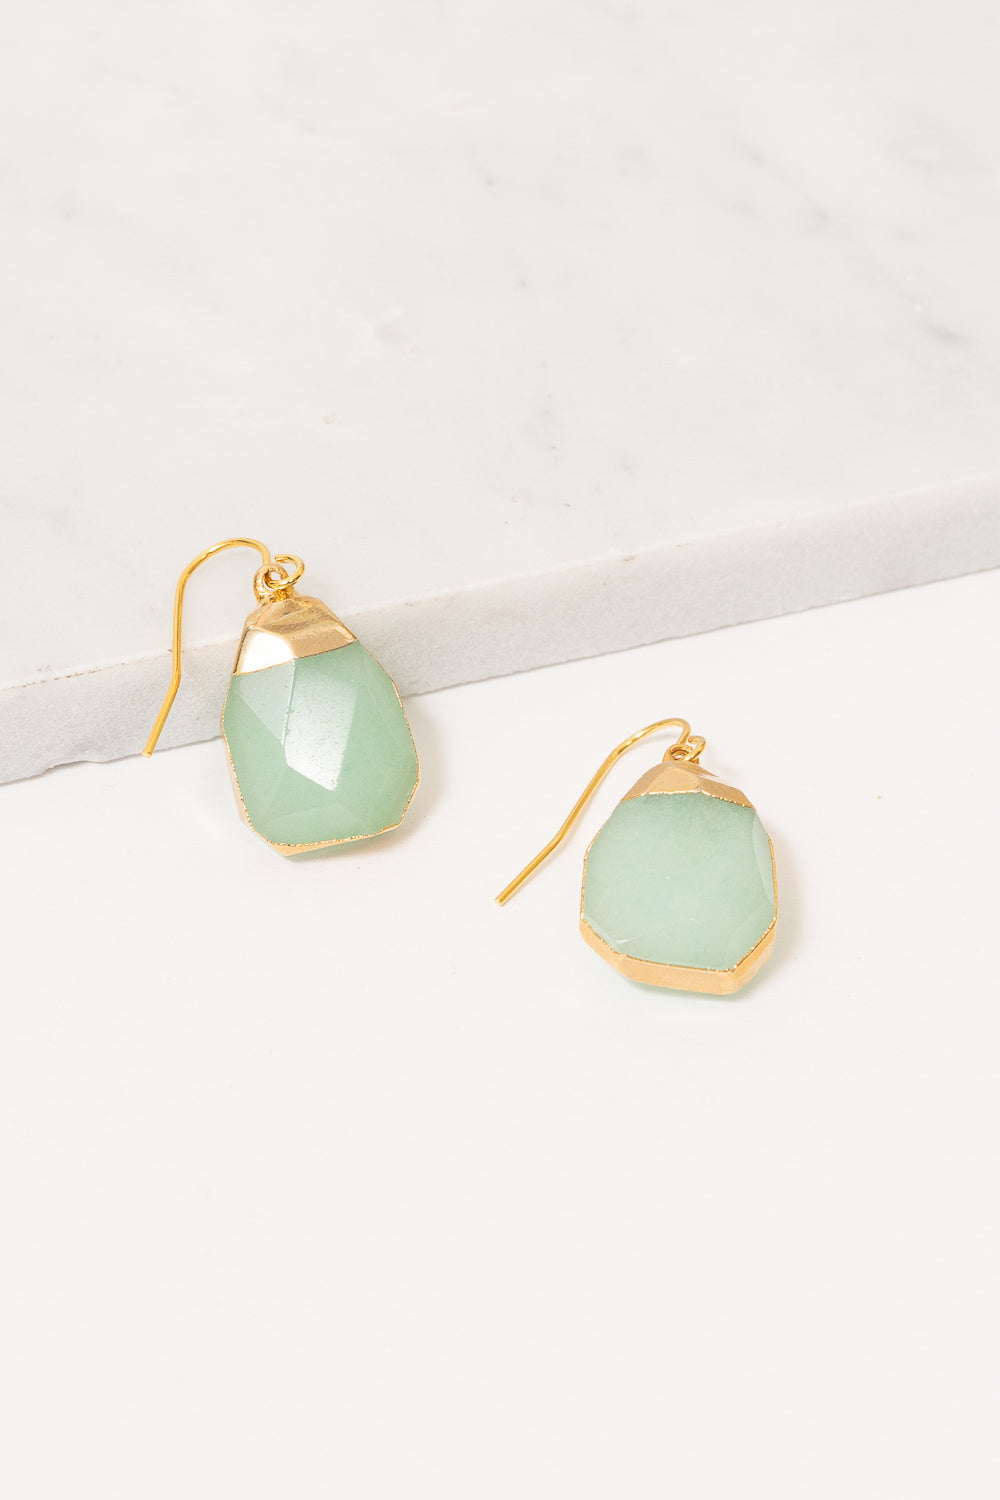 mint jade green dangle earrings on marble